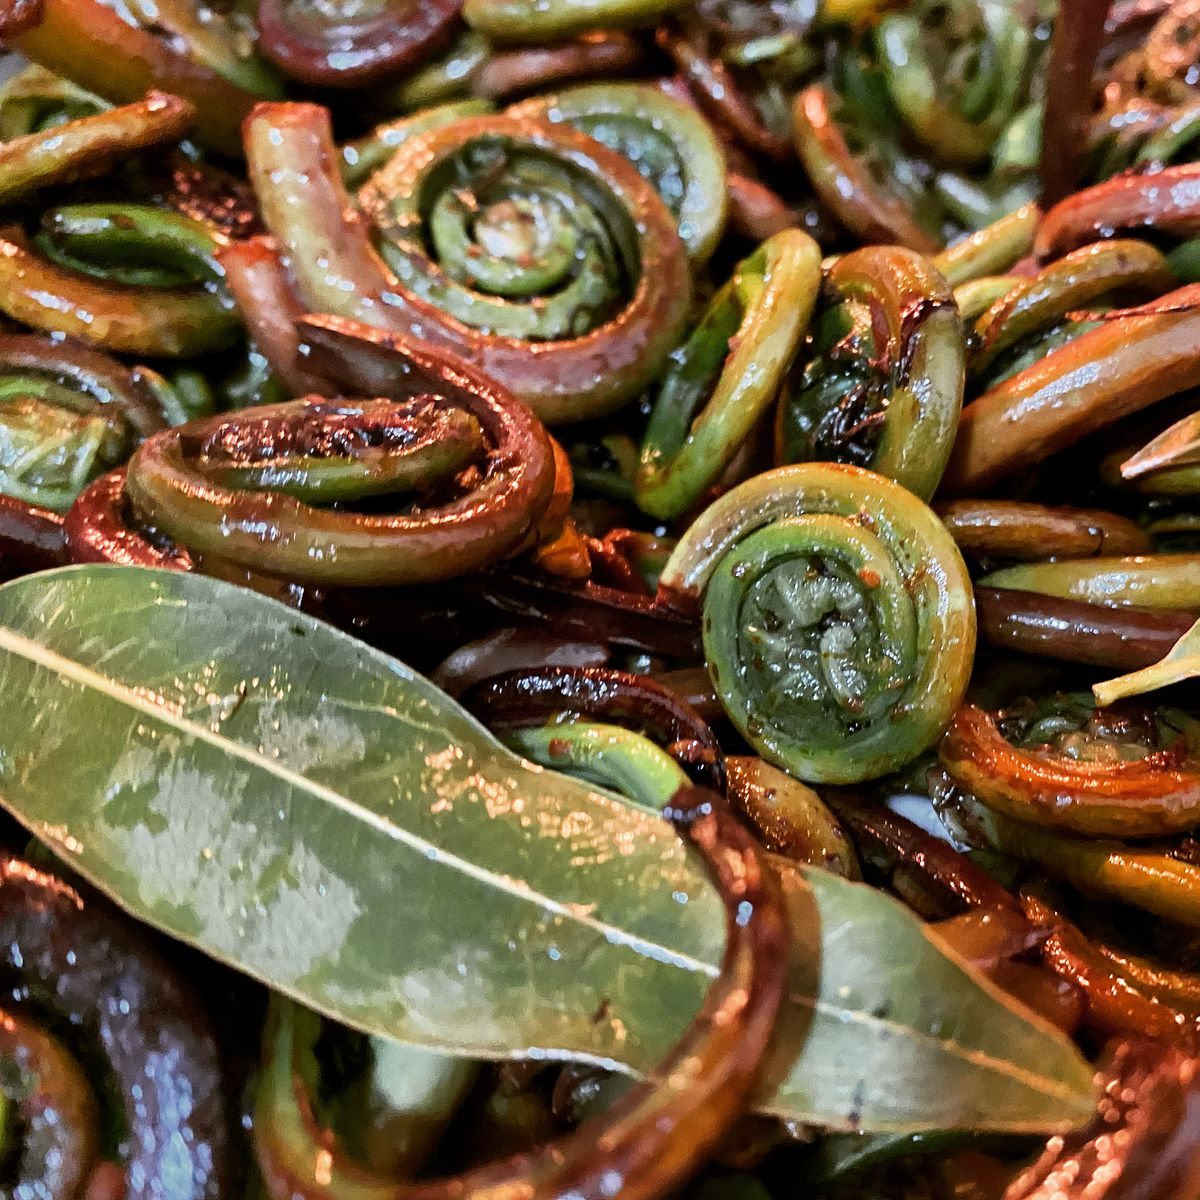 An early spring dish of fiddleheads at Cafe Ohlone